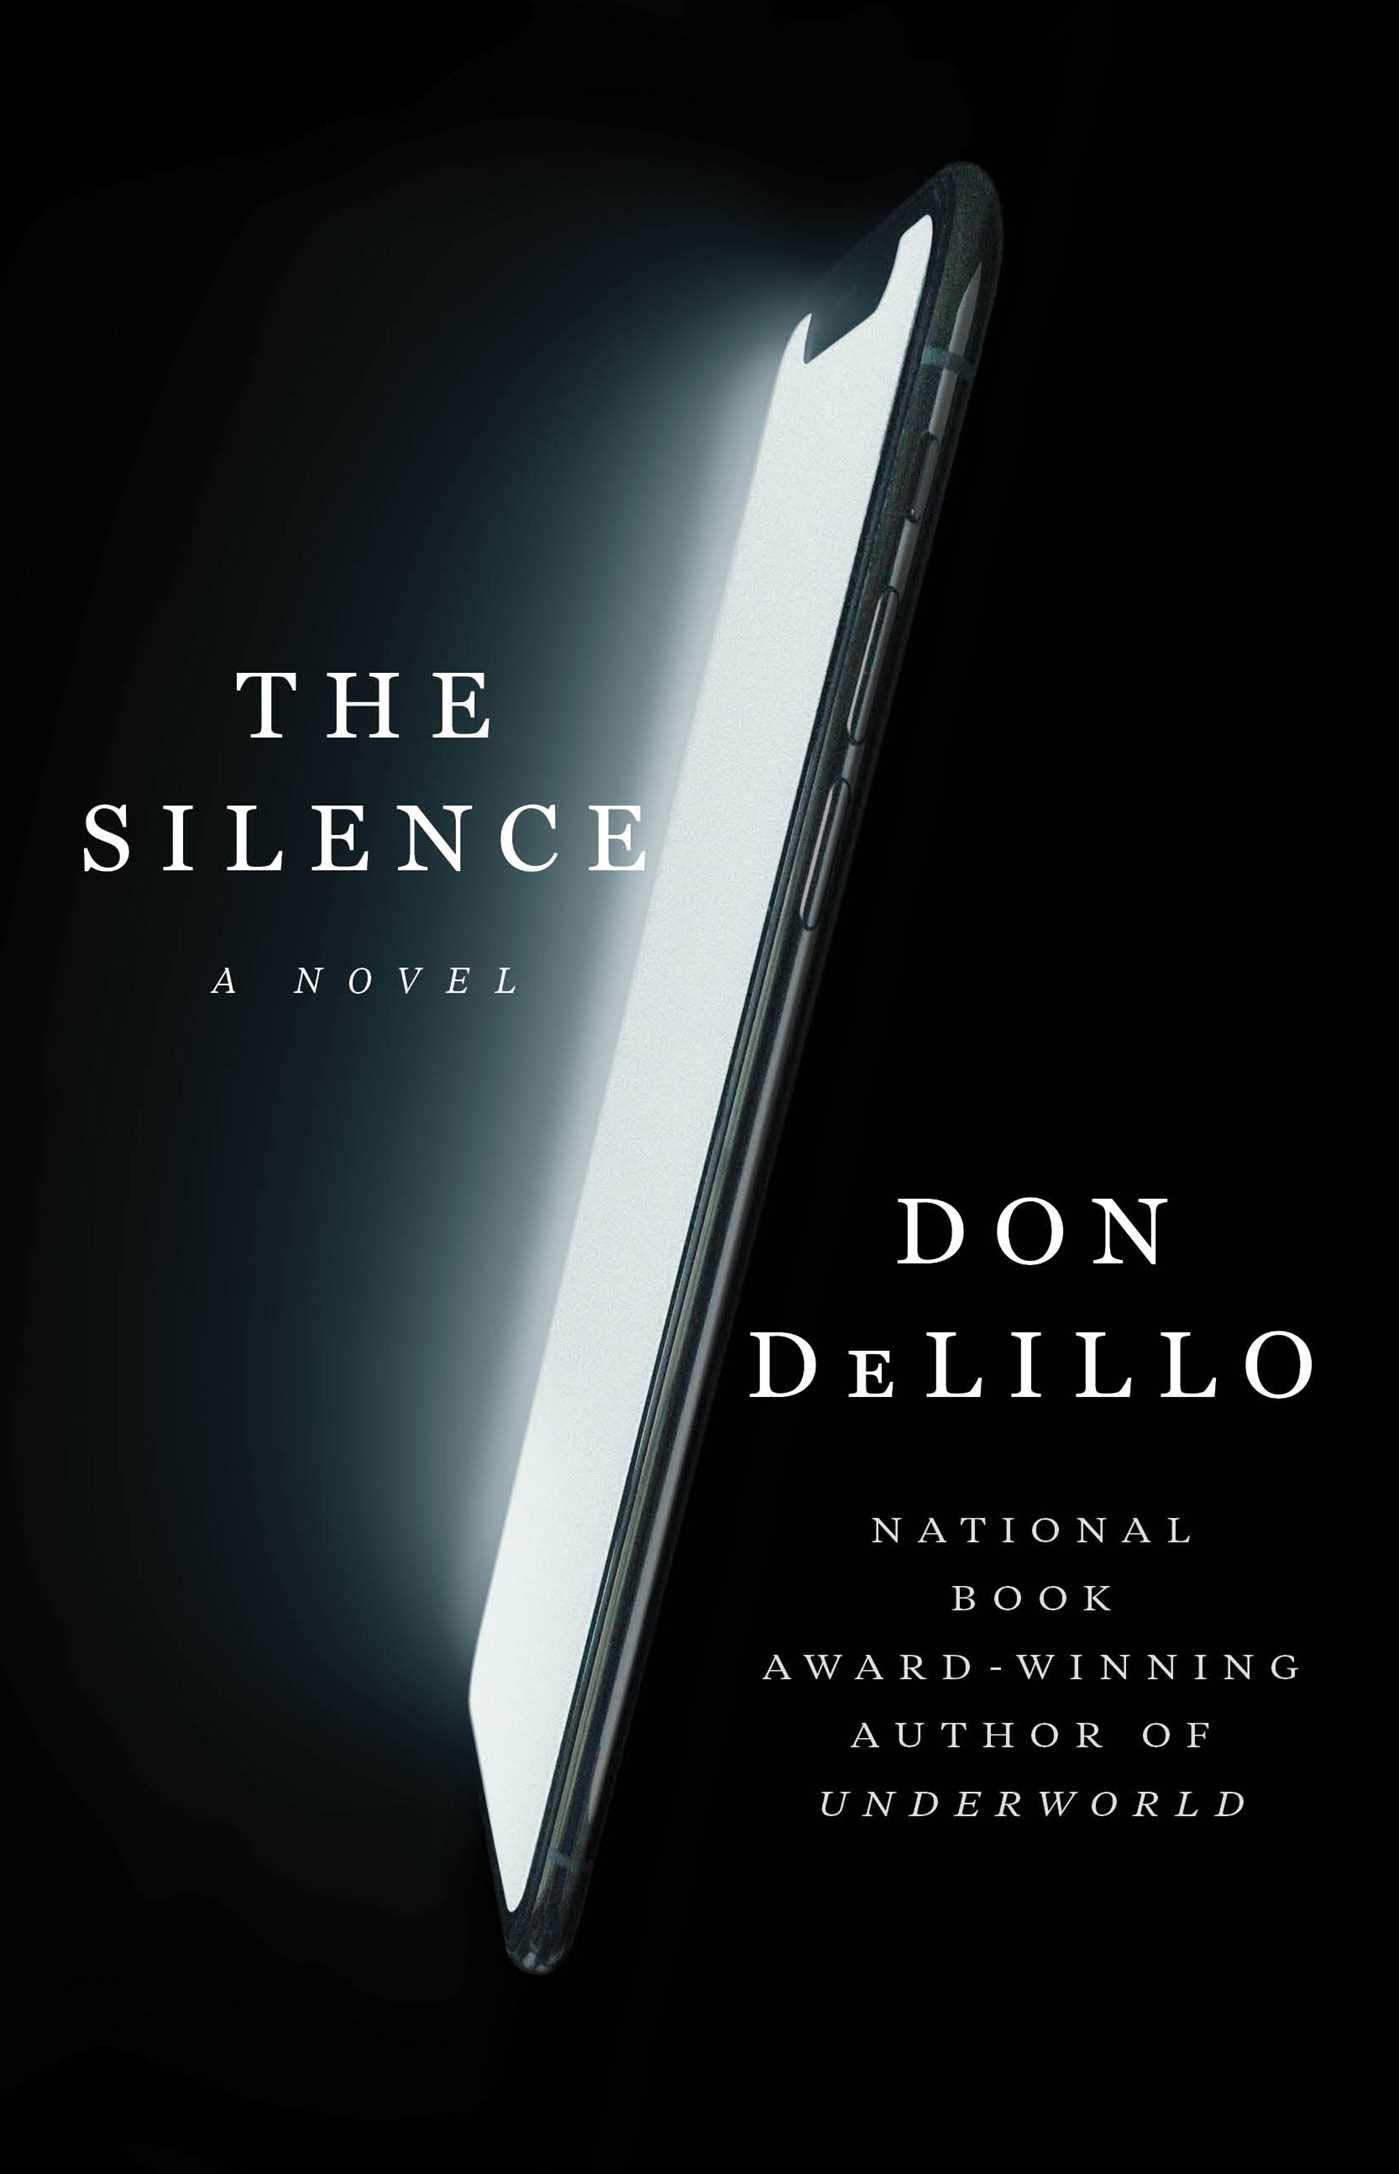 Image result for the silence by don delillo amazon